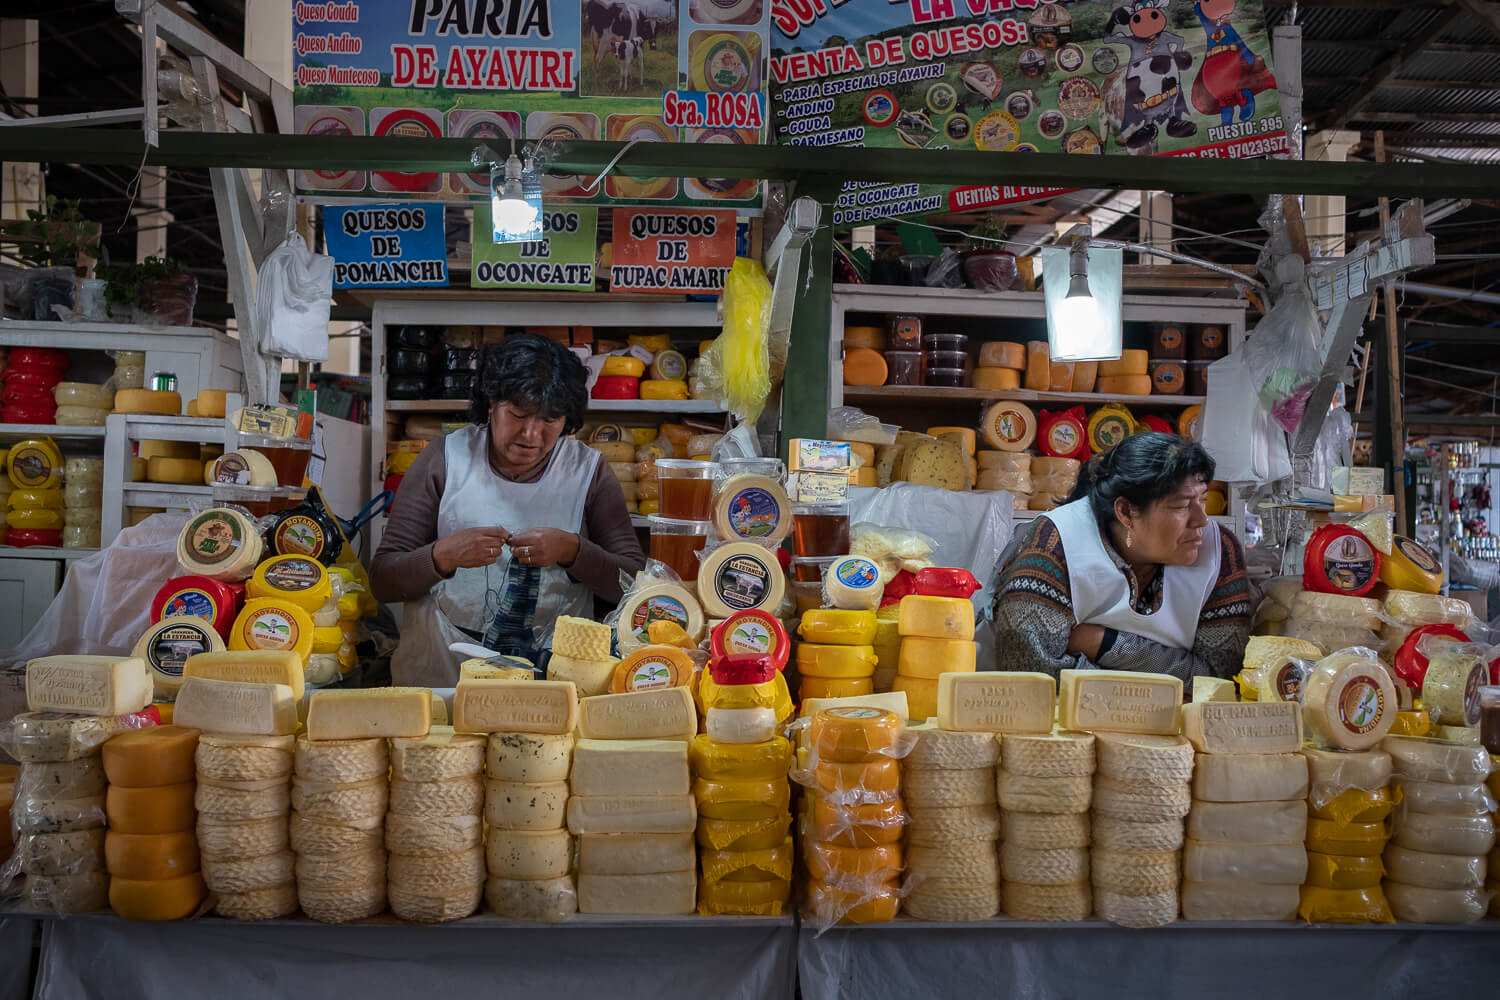 """Women selling cheese in the San Pedro Market, Cusco. Travel photography and guide by © Natasha Lequepeys for """"And Then I Met Yoko"""". #cusco #peru #photoblog #travelblog #peruitinerary #cuscoitinerary"""